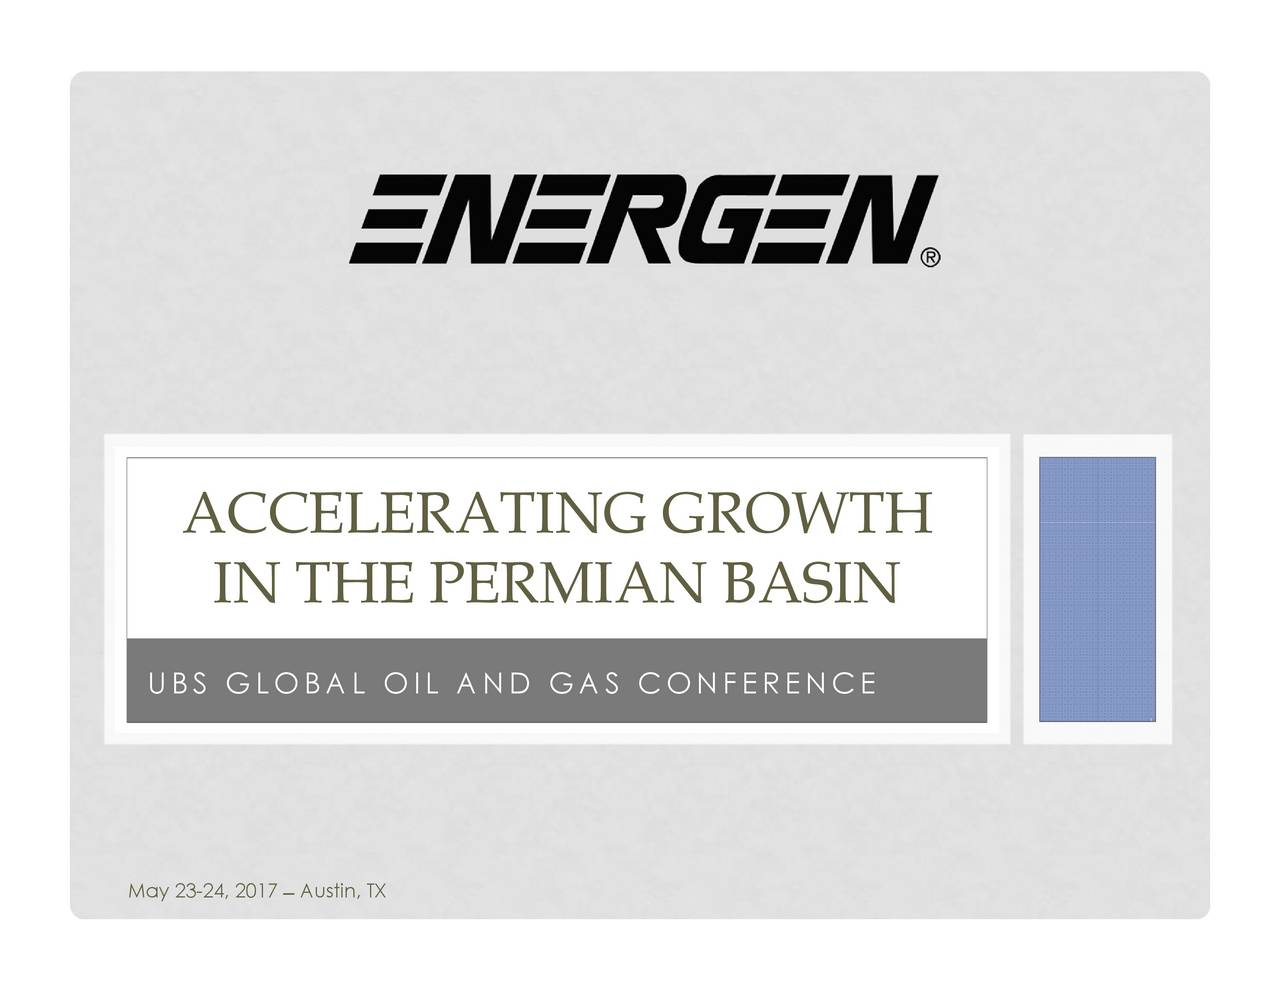 IN THE PERMIAN BASIN ACCELERATING GROWTH UBS GLOBAL OMay 23-24, 2017ERENCE